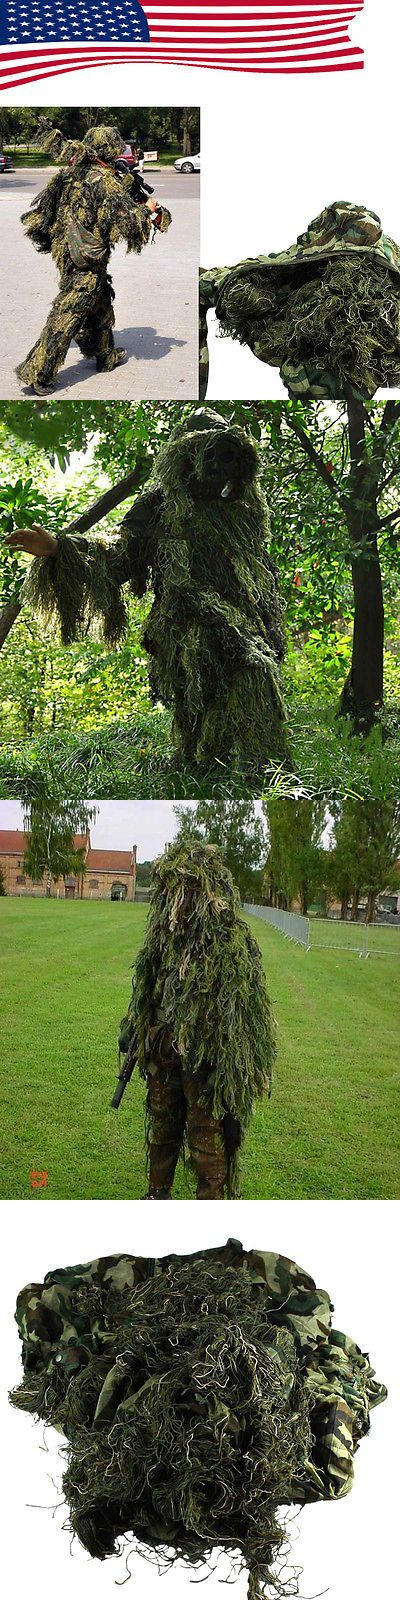 Ghillie Suits 177870: Set Yowie Sniper Camouflage Tactical Camo Suit For Ghillie Hunting Birding -> BUY IT NOW ONLY: $32.29 on eBay!